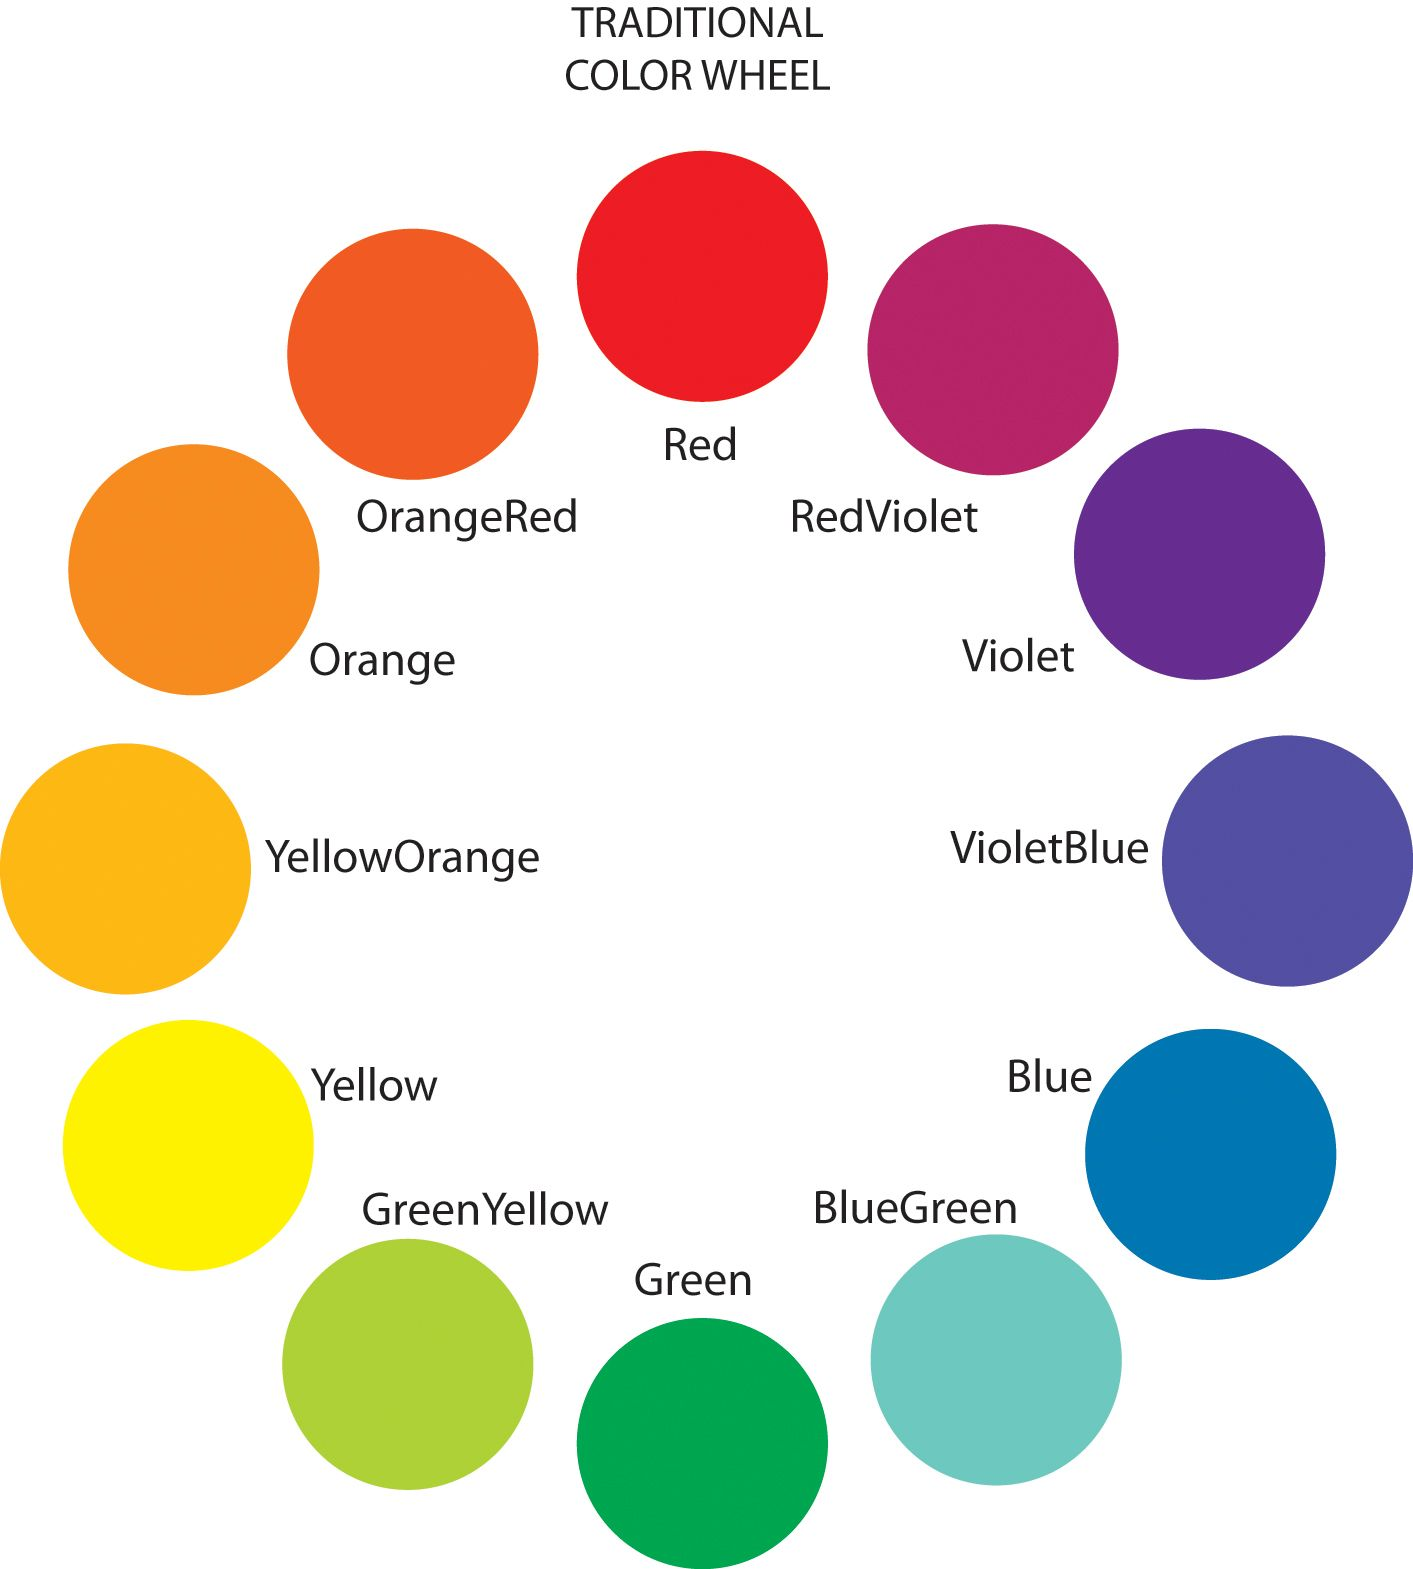 complementary colors (ones across from each other) neutralize one ...